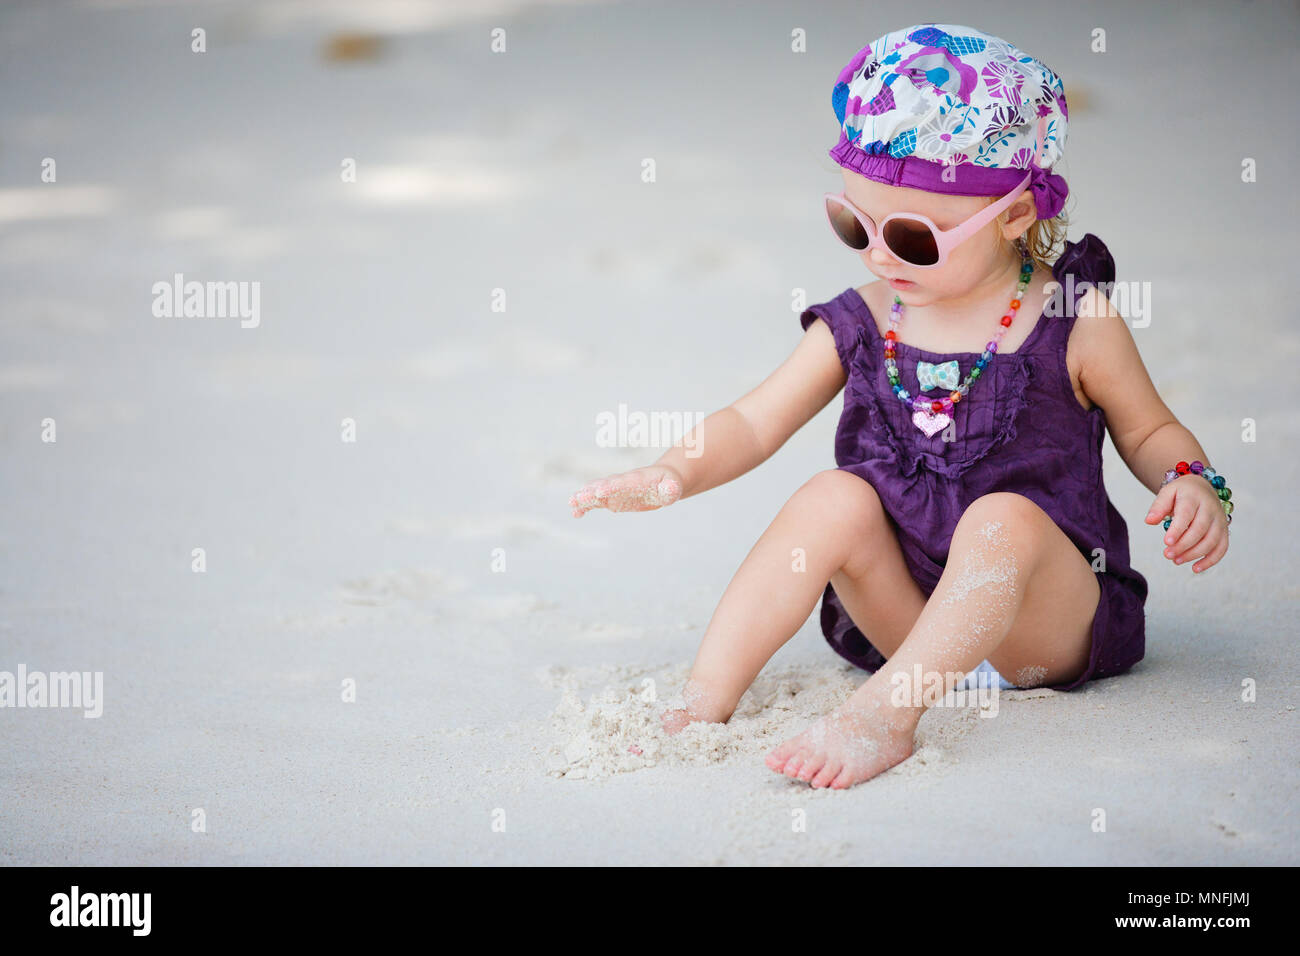 Portrait of adorable toddler girl fancy dressed - Stock Image